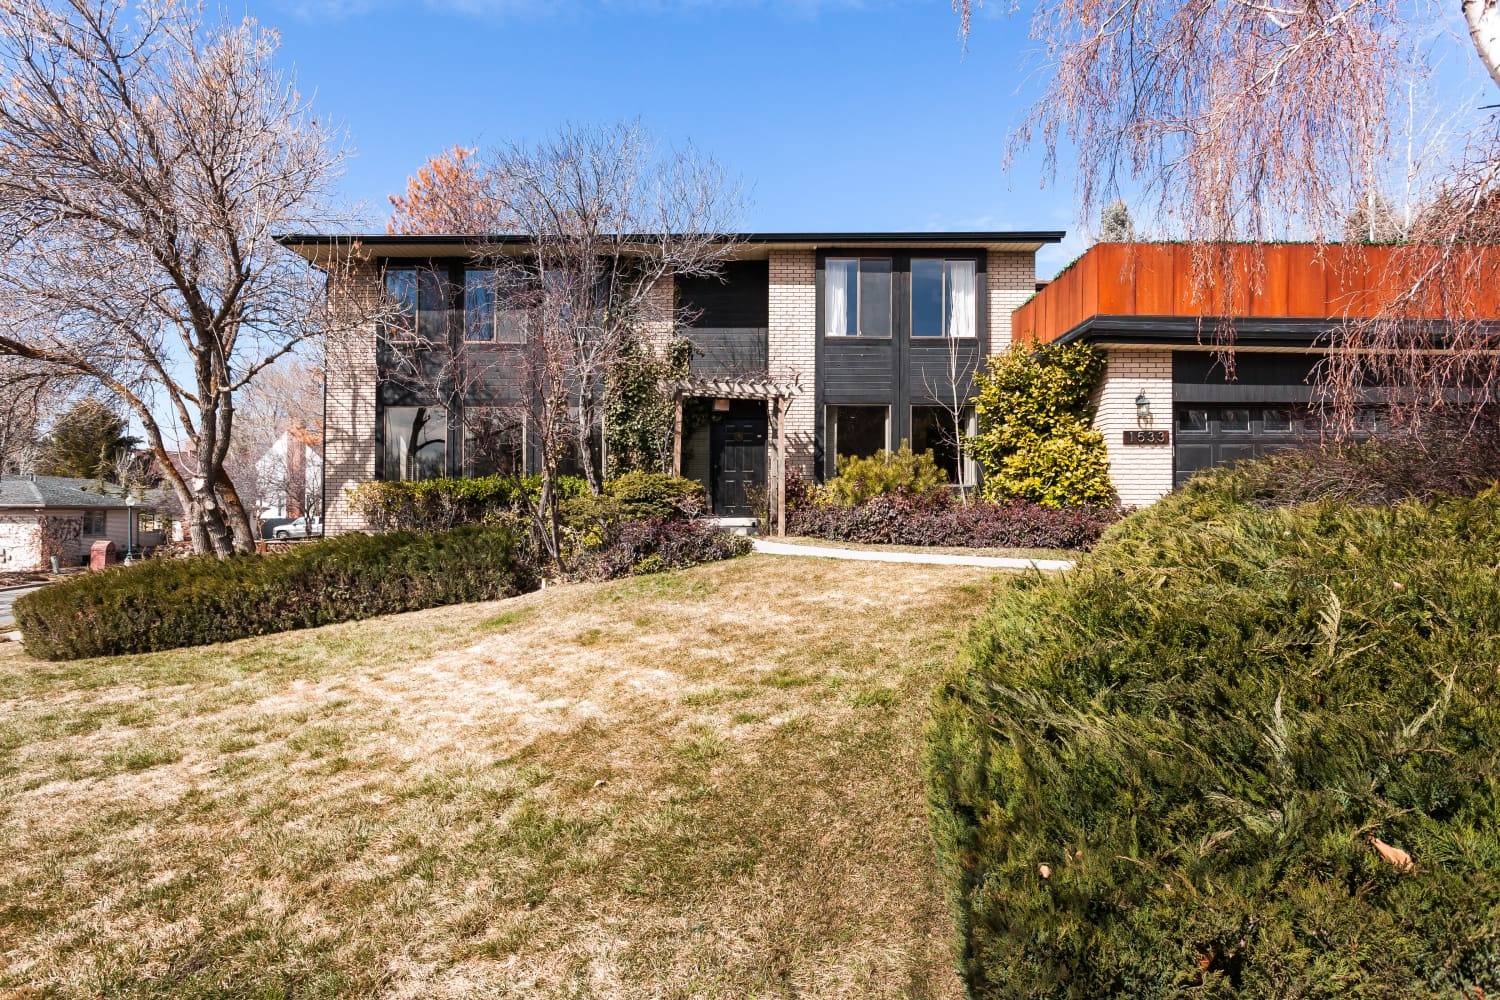 Look Inside: This 4,359-Square-Foot Home in Salt Lake City Is a Master Class in Simple Elegance